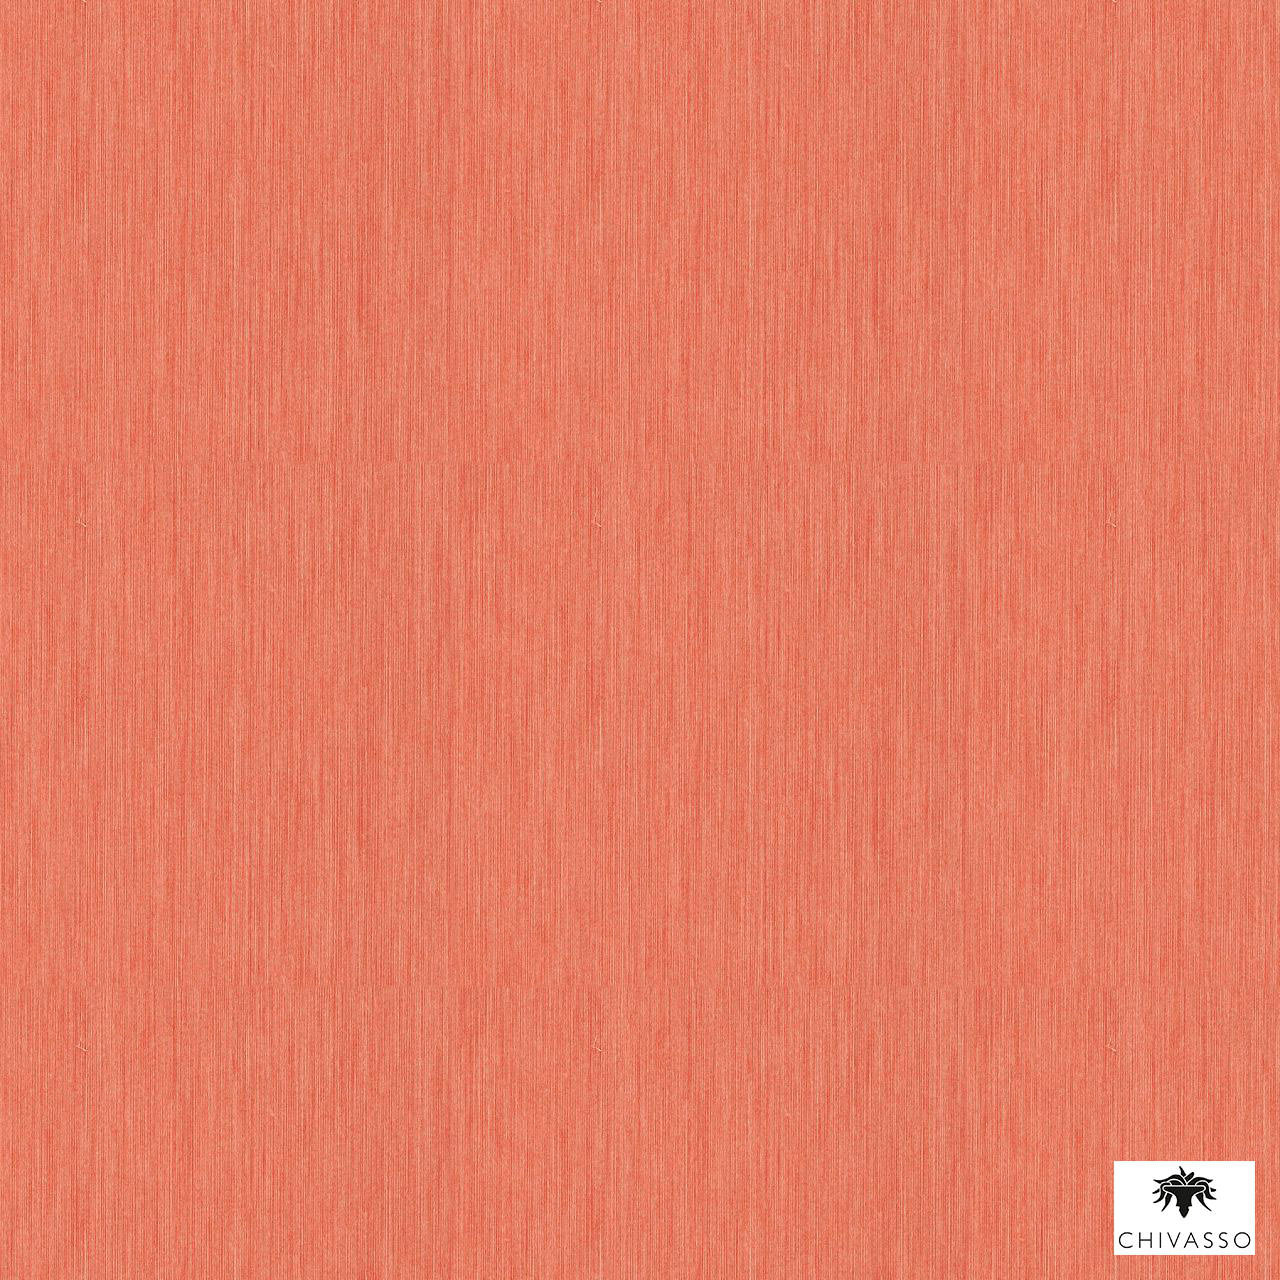 Chivasso - Colour Block - Ch9112-012  | Wallpaper, Wallcovering - Plain, Domestic Use